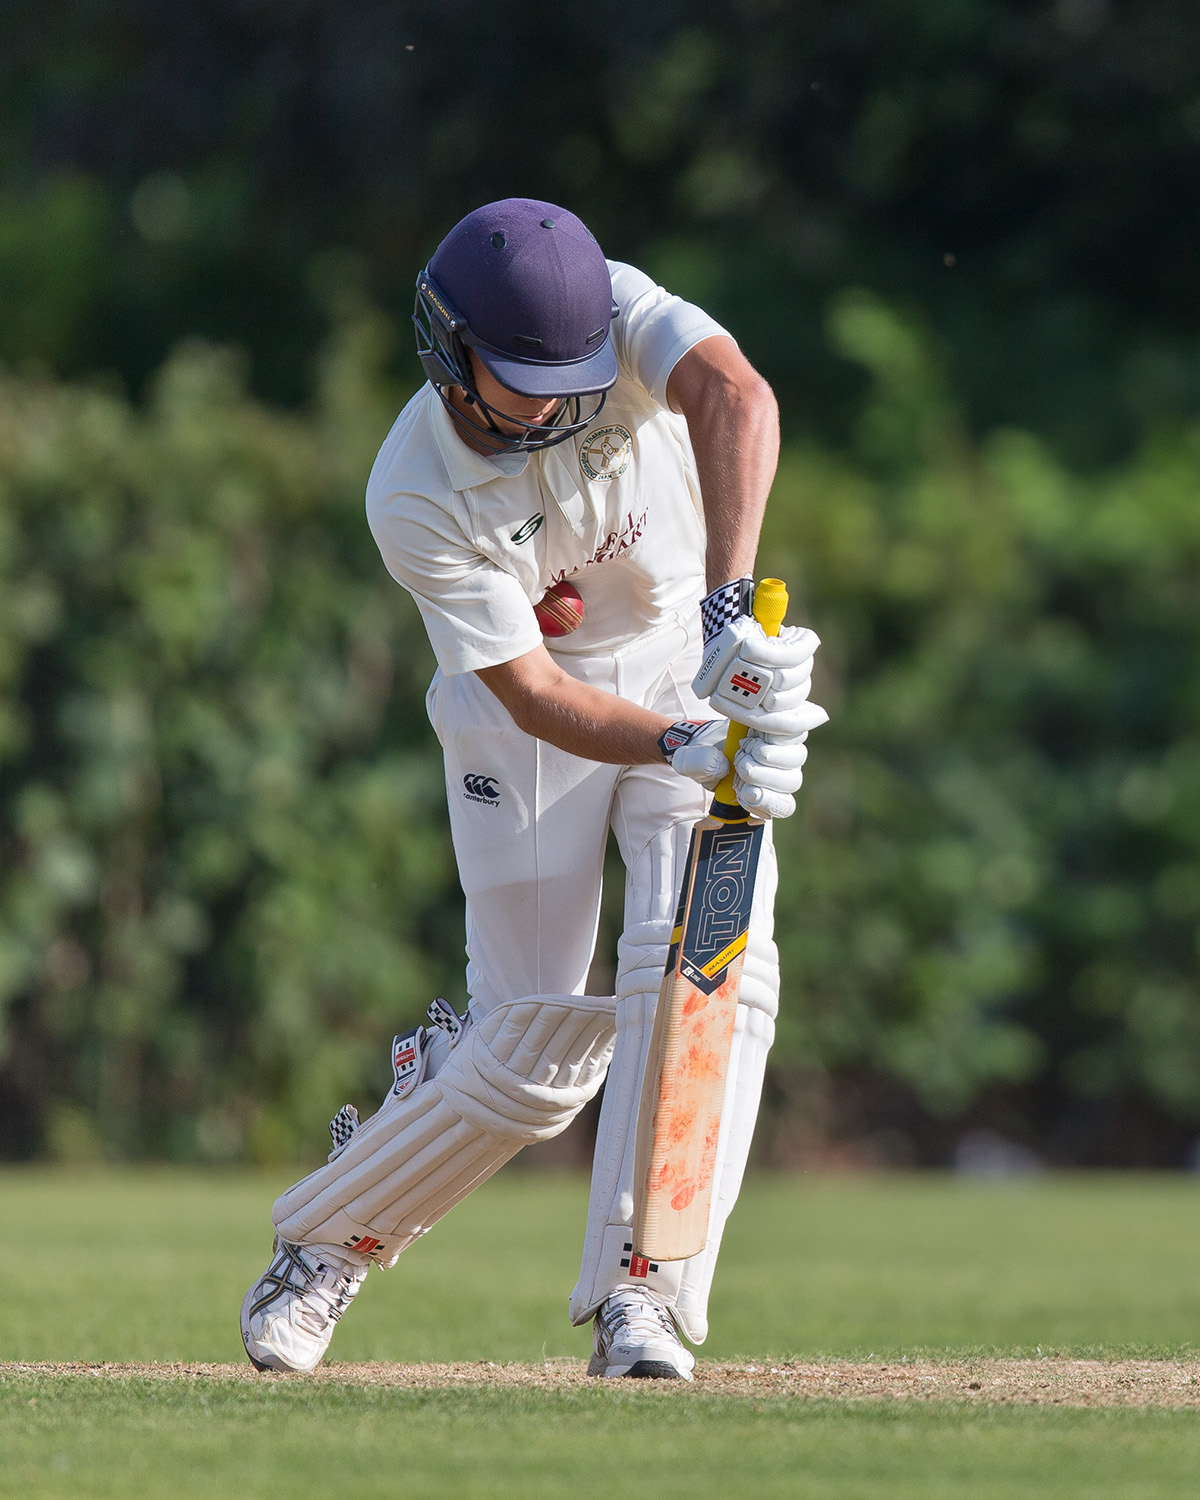 WCTCC_1XI_24Aug_Batting_014